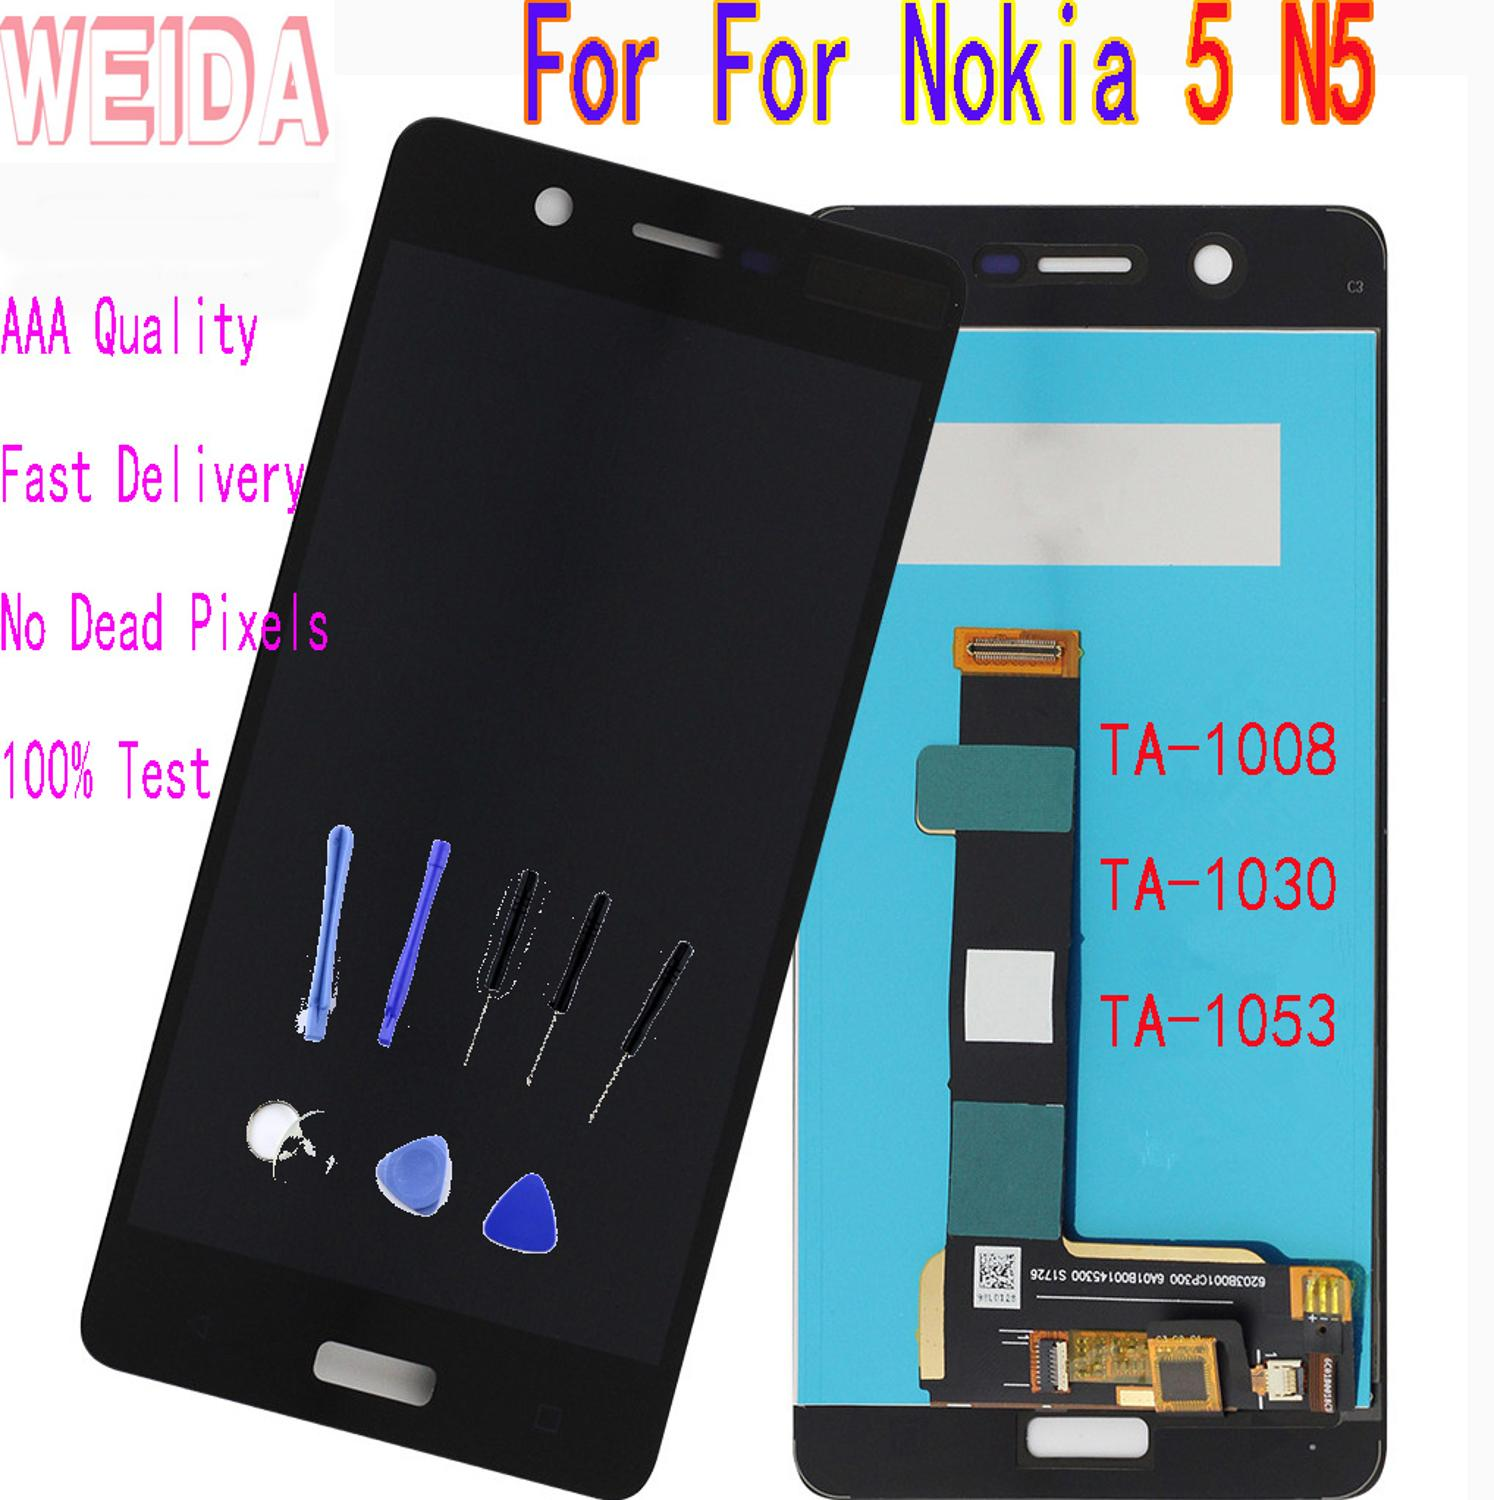 WEIDA For <font><b>Nokia</b></font> <font><b>5</b></font> N5 TA-1008 TA-<font><b>1053</b></font> TA-1030 LCD Display Touch Screen Digitizer Assembly Frame with Tool image